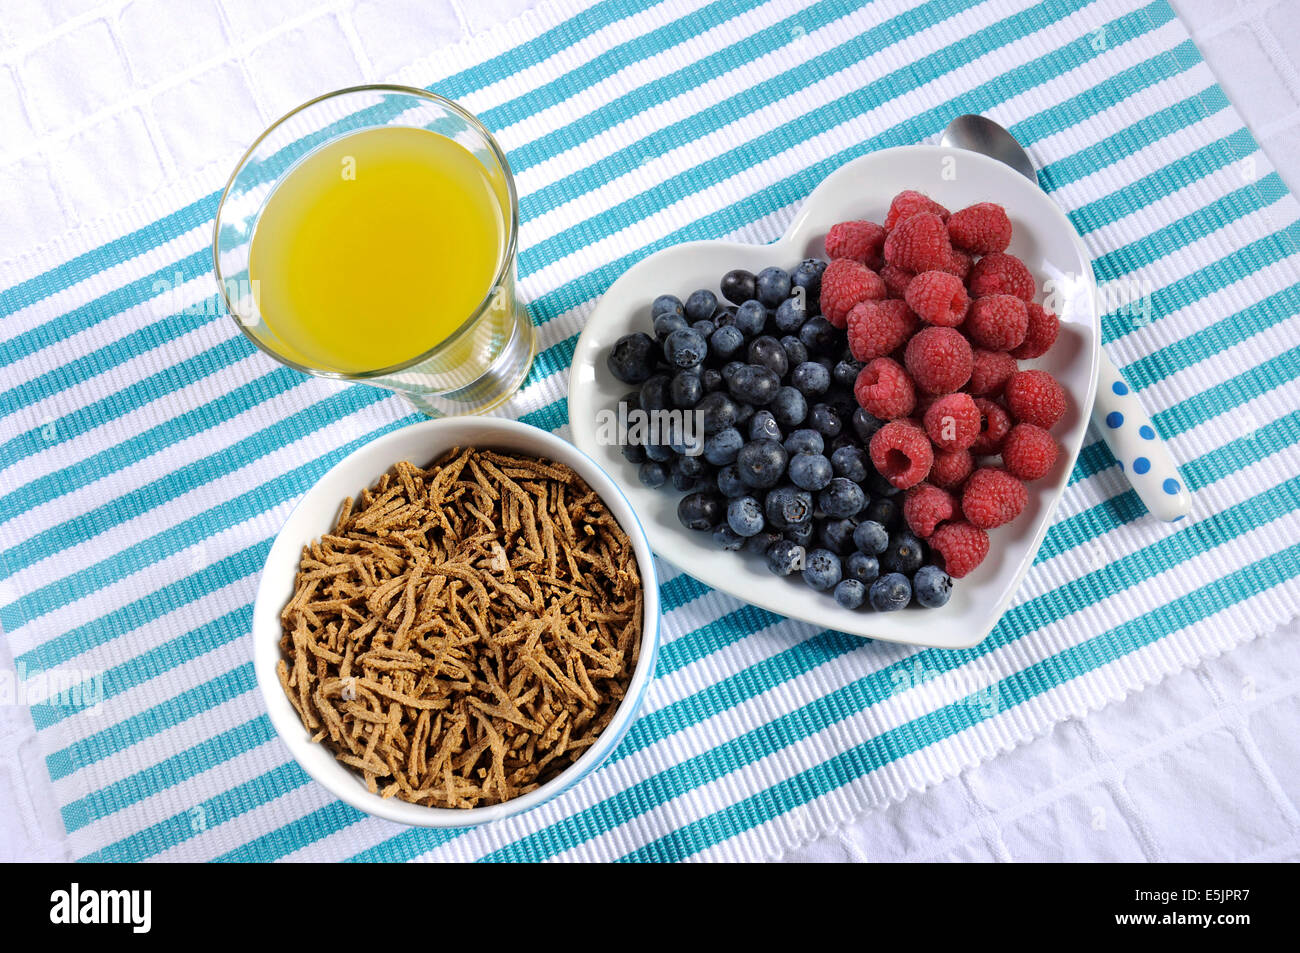 Healthy diet high dietary fiber breakfast with bowl of bran cereal and berries on white heart plate on aqua blue - Stock Image